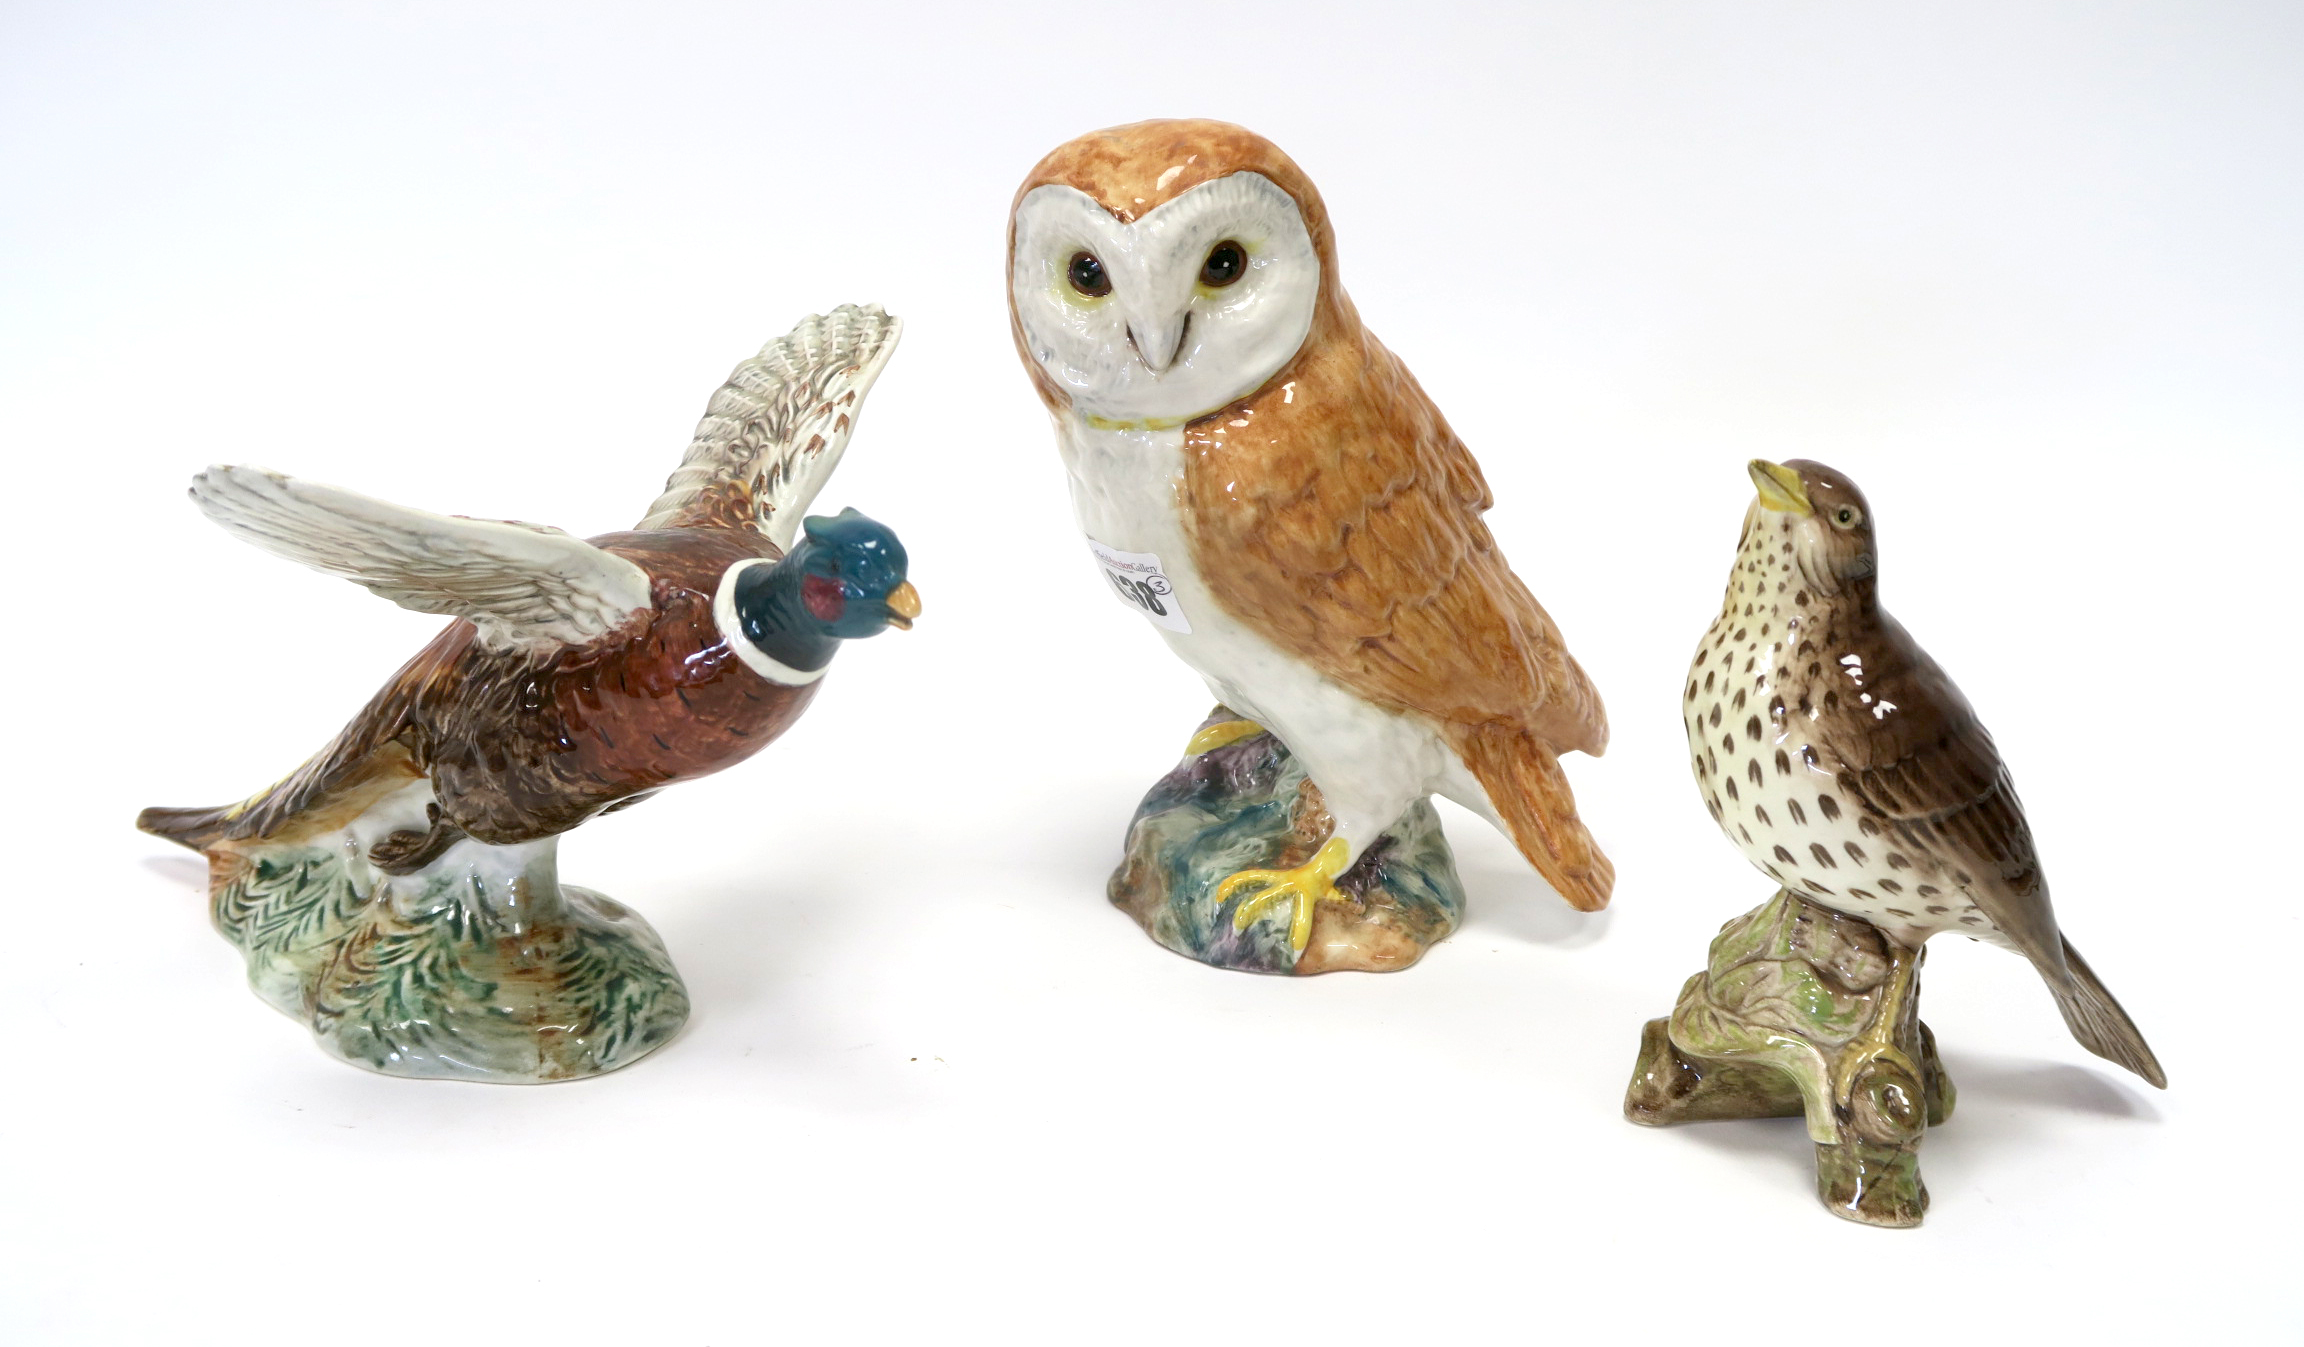 Lot 638 - A Beswick Pottery Barn Owl, shape number 1046, printed and impressed marks, 19cm high; A Beswick